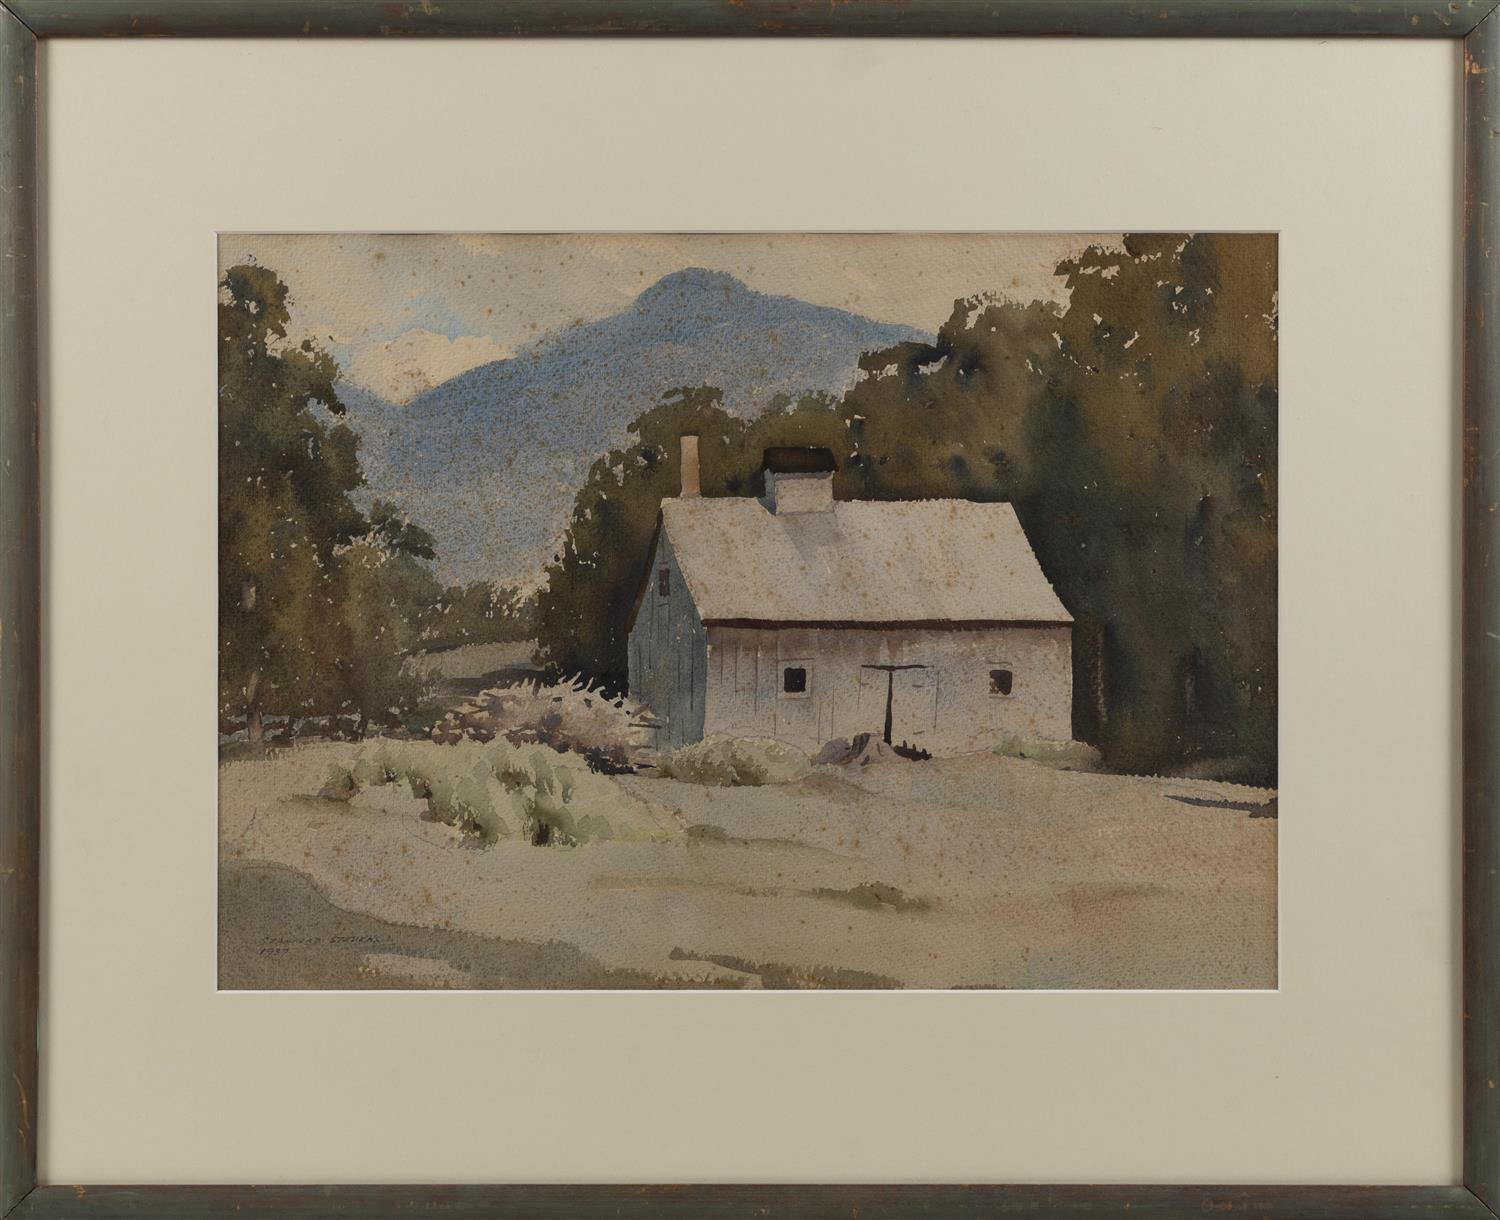 "STANFORD STEVENS, Vermont/California, 1897-1974, A barn in a mountainous landscape., Watercolor on paper, 14"" x 19.75"" sight. Framed..."